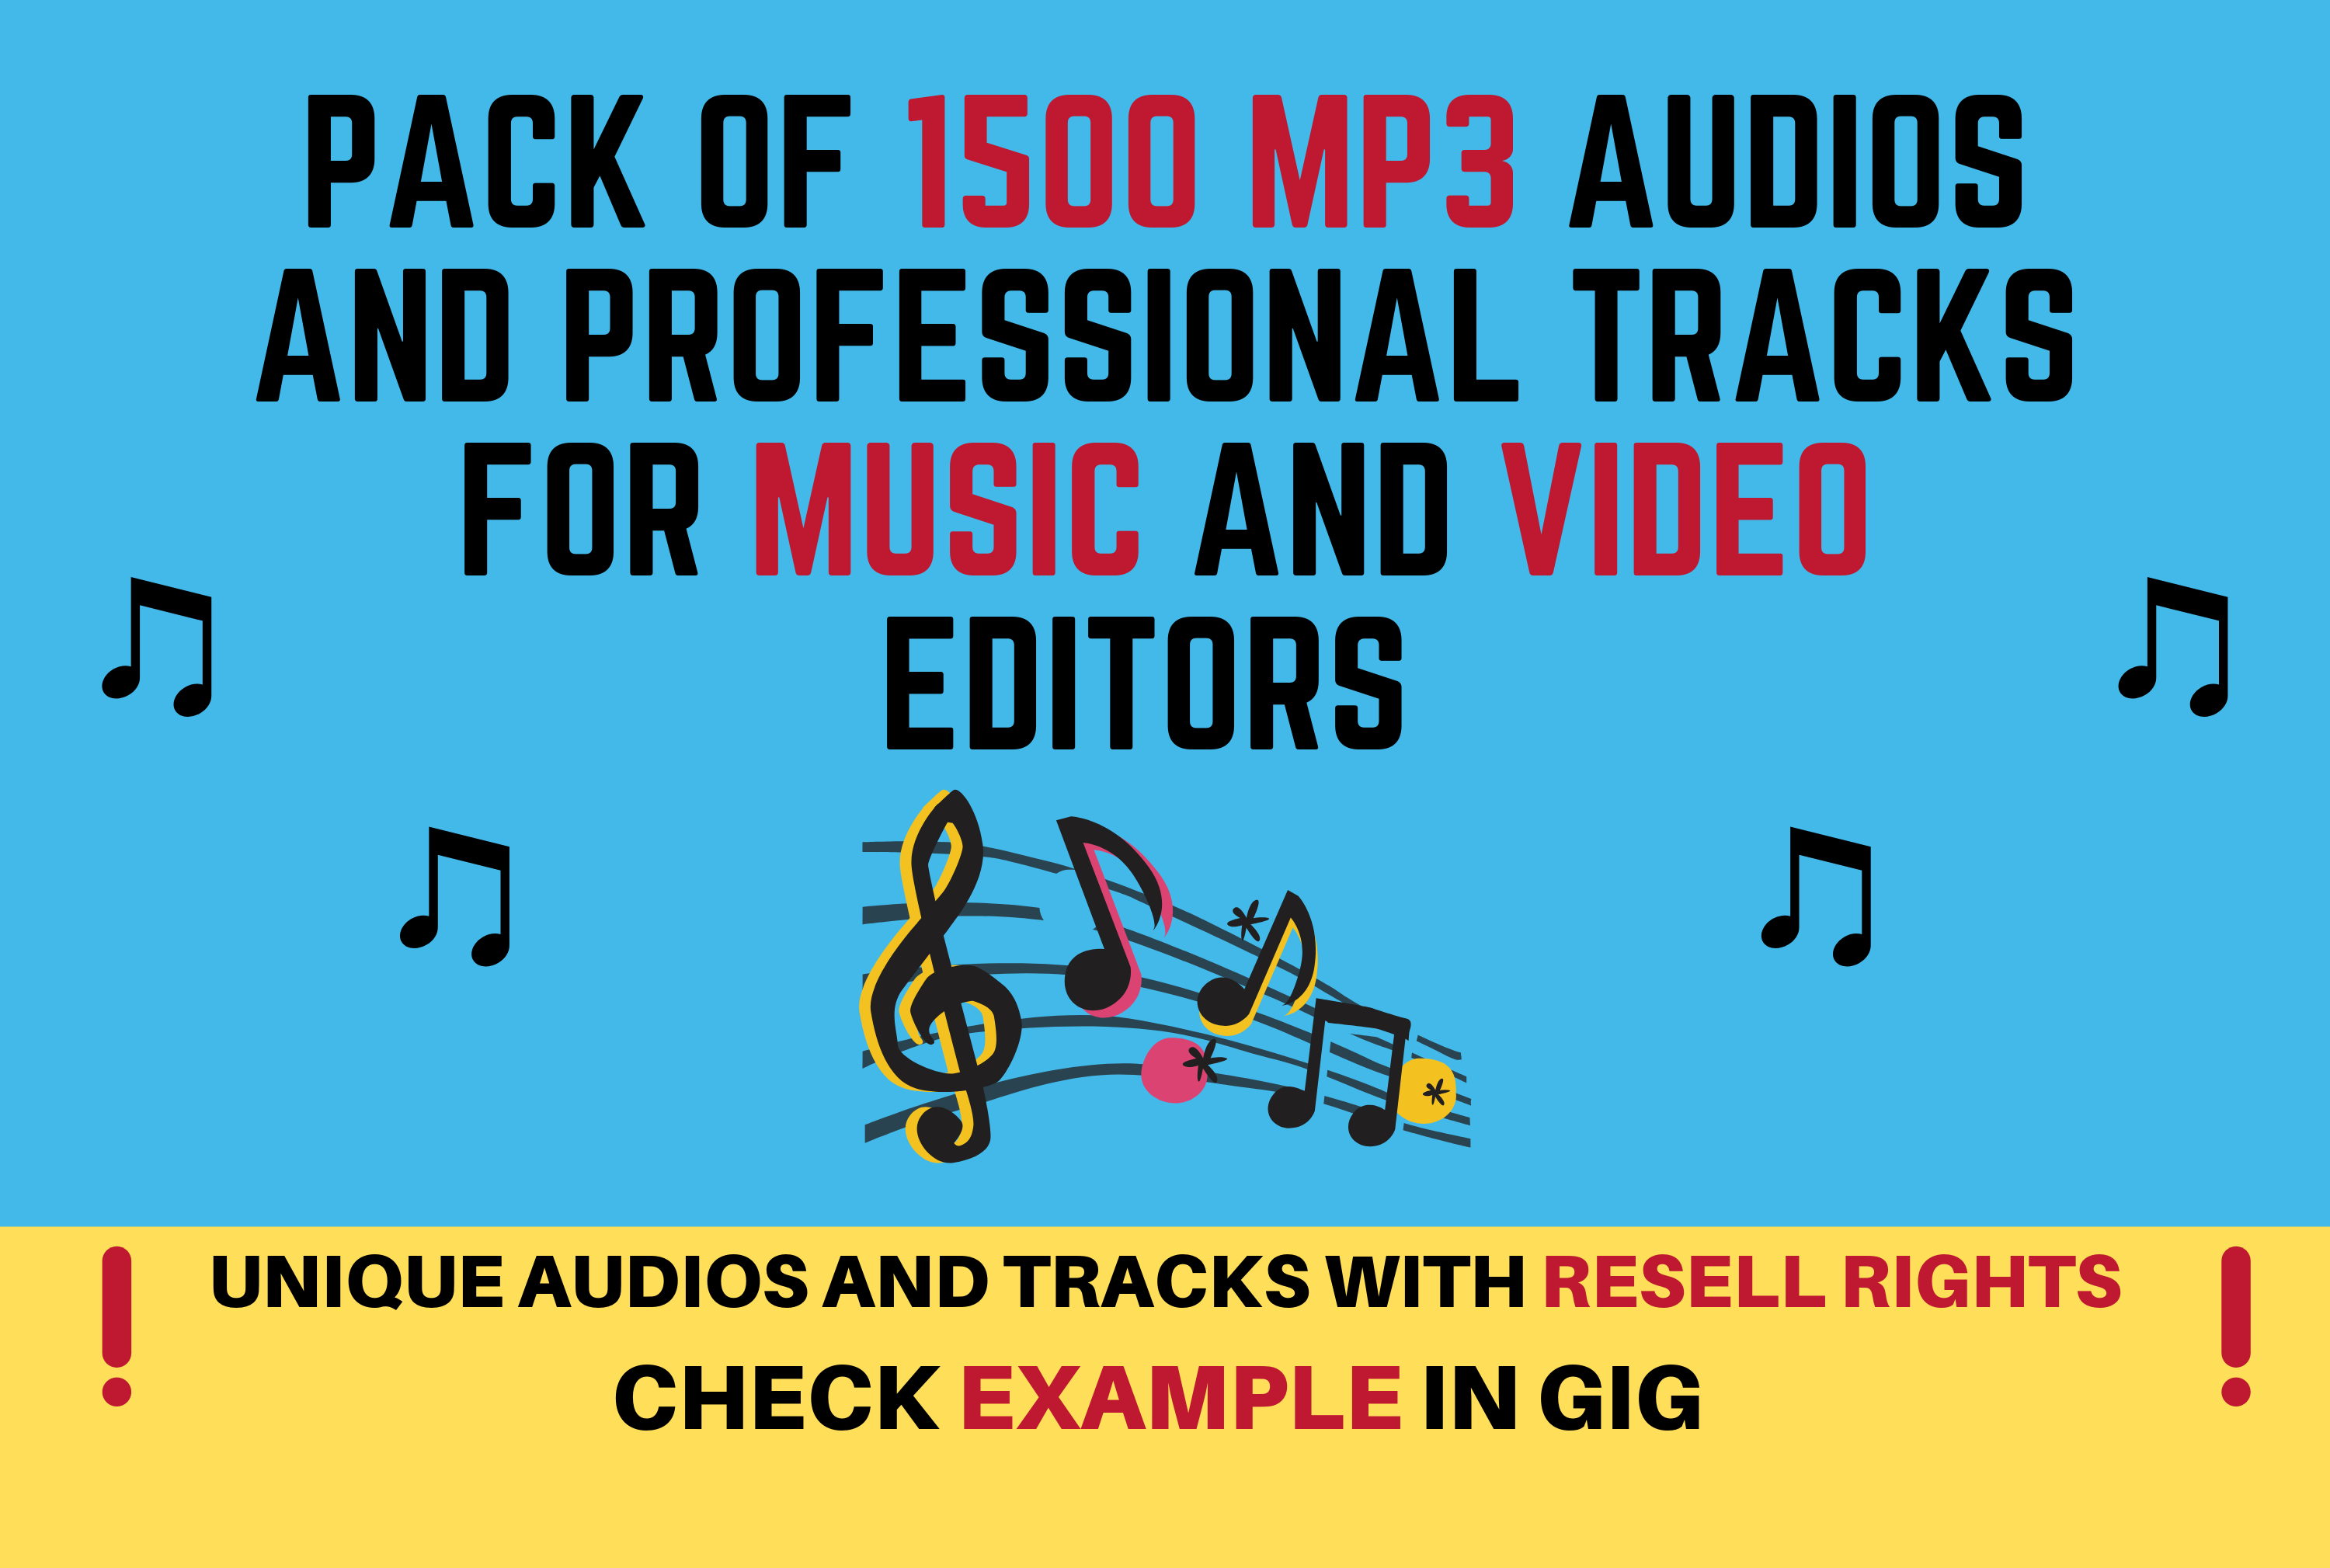 PACK OF 1500 MP3 AUDIOS AND PROFESSIONAL TRACKS FOR MUSIC AND VIDEO EDITORS